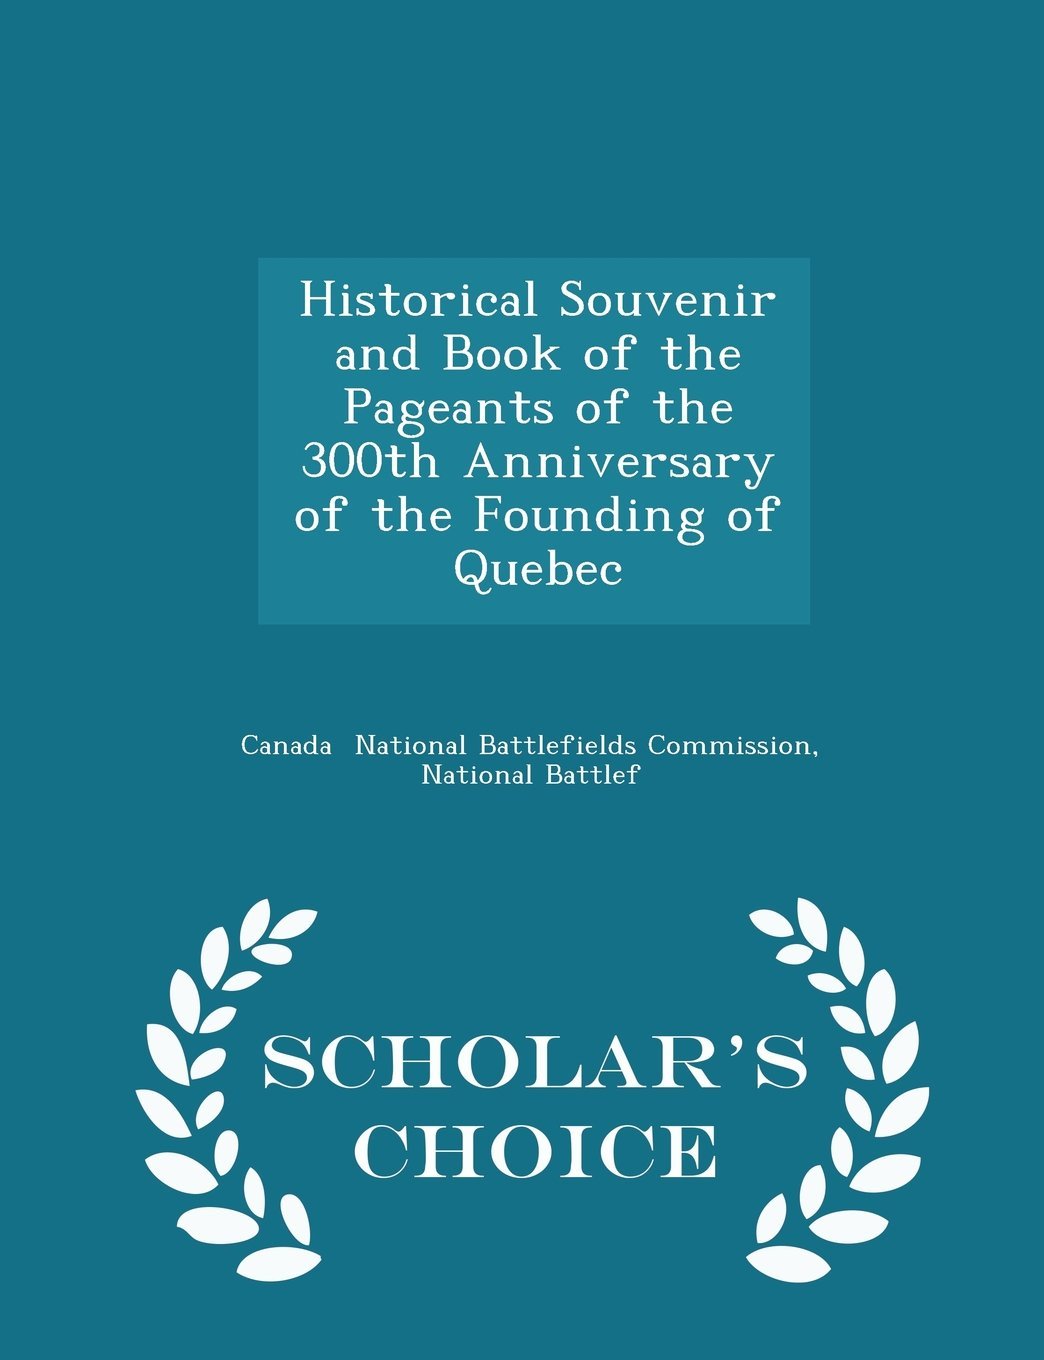 Read Online Historical Souvenir and Book of the Pageants of the 300th Anniversary of the Founding of Quebec - Scholar's Choice Edition pdf